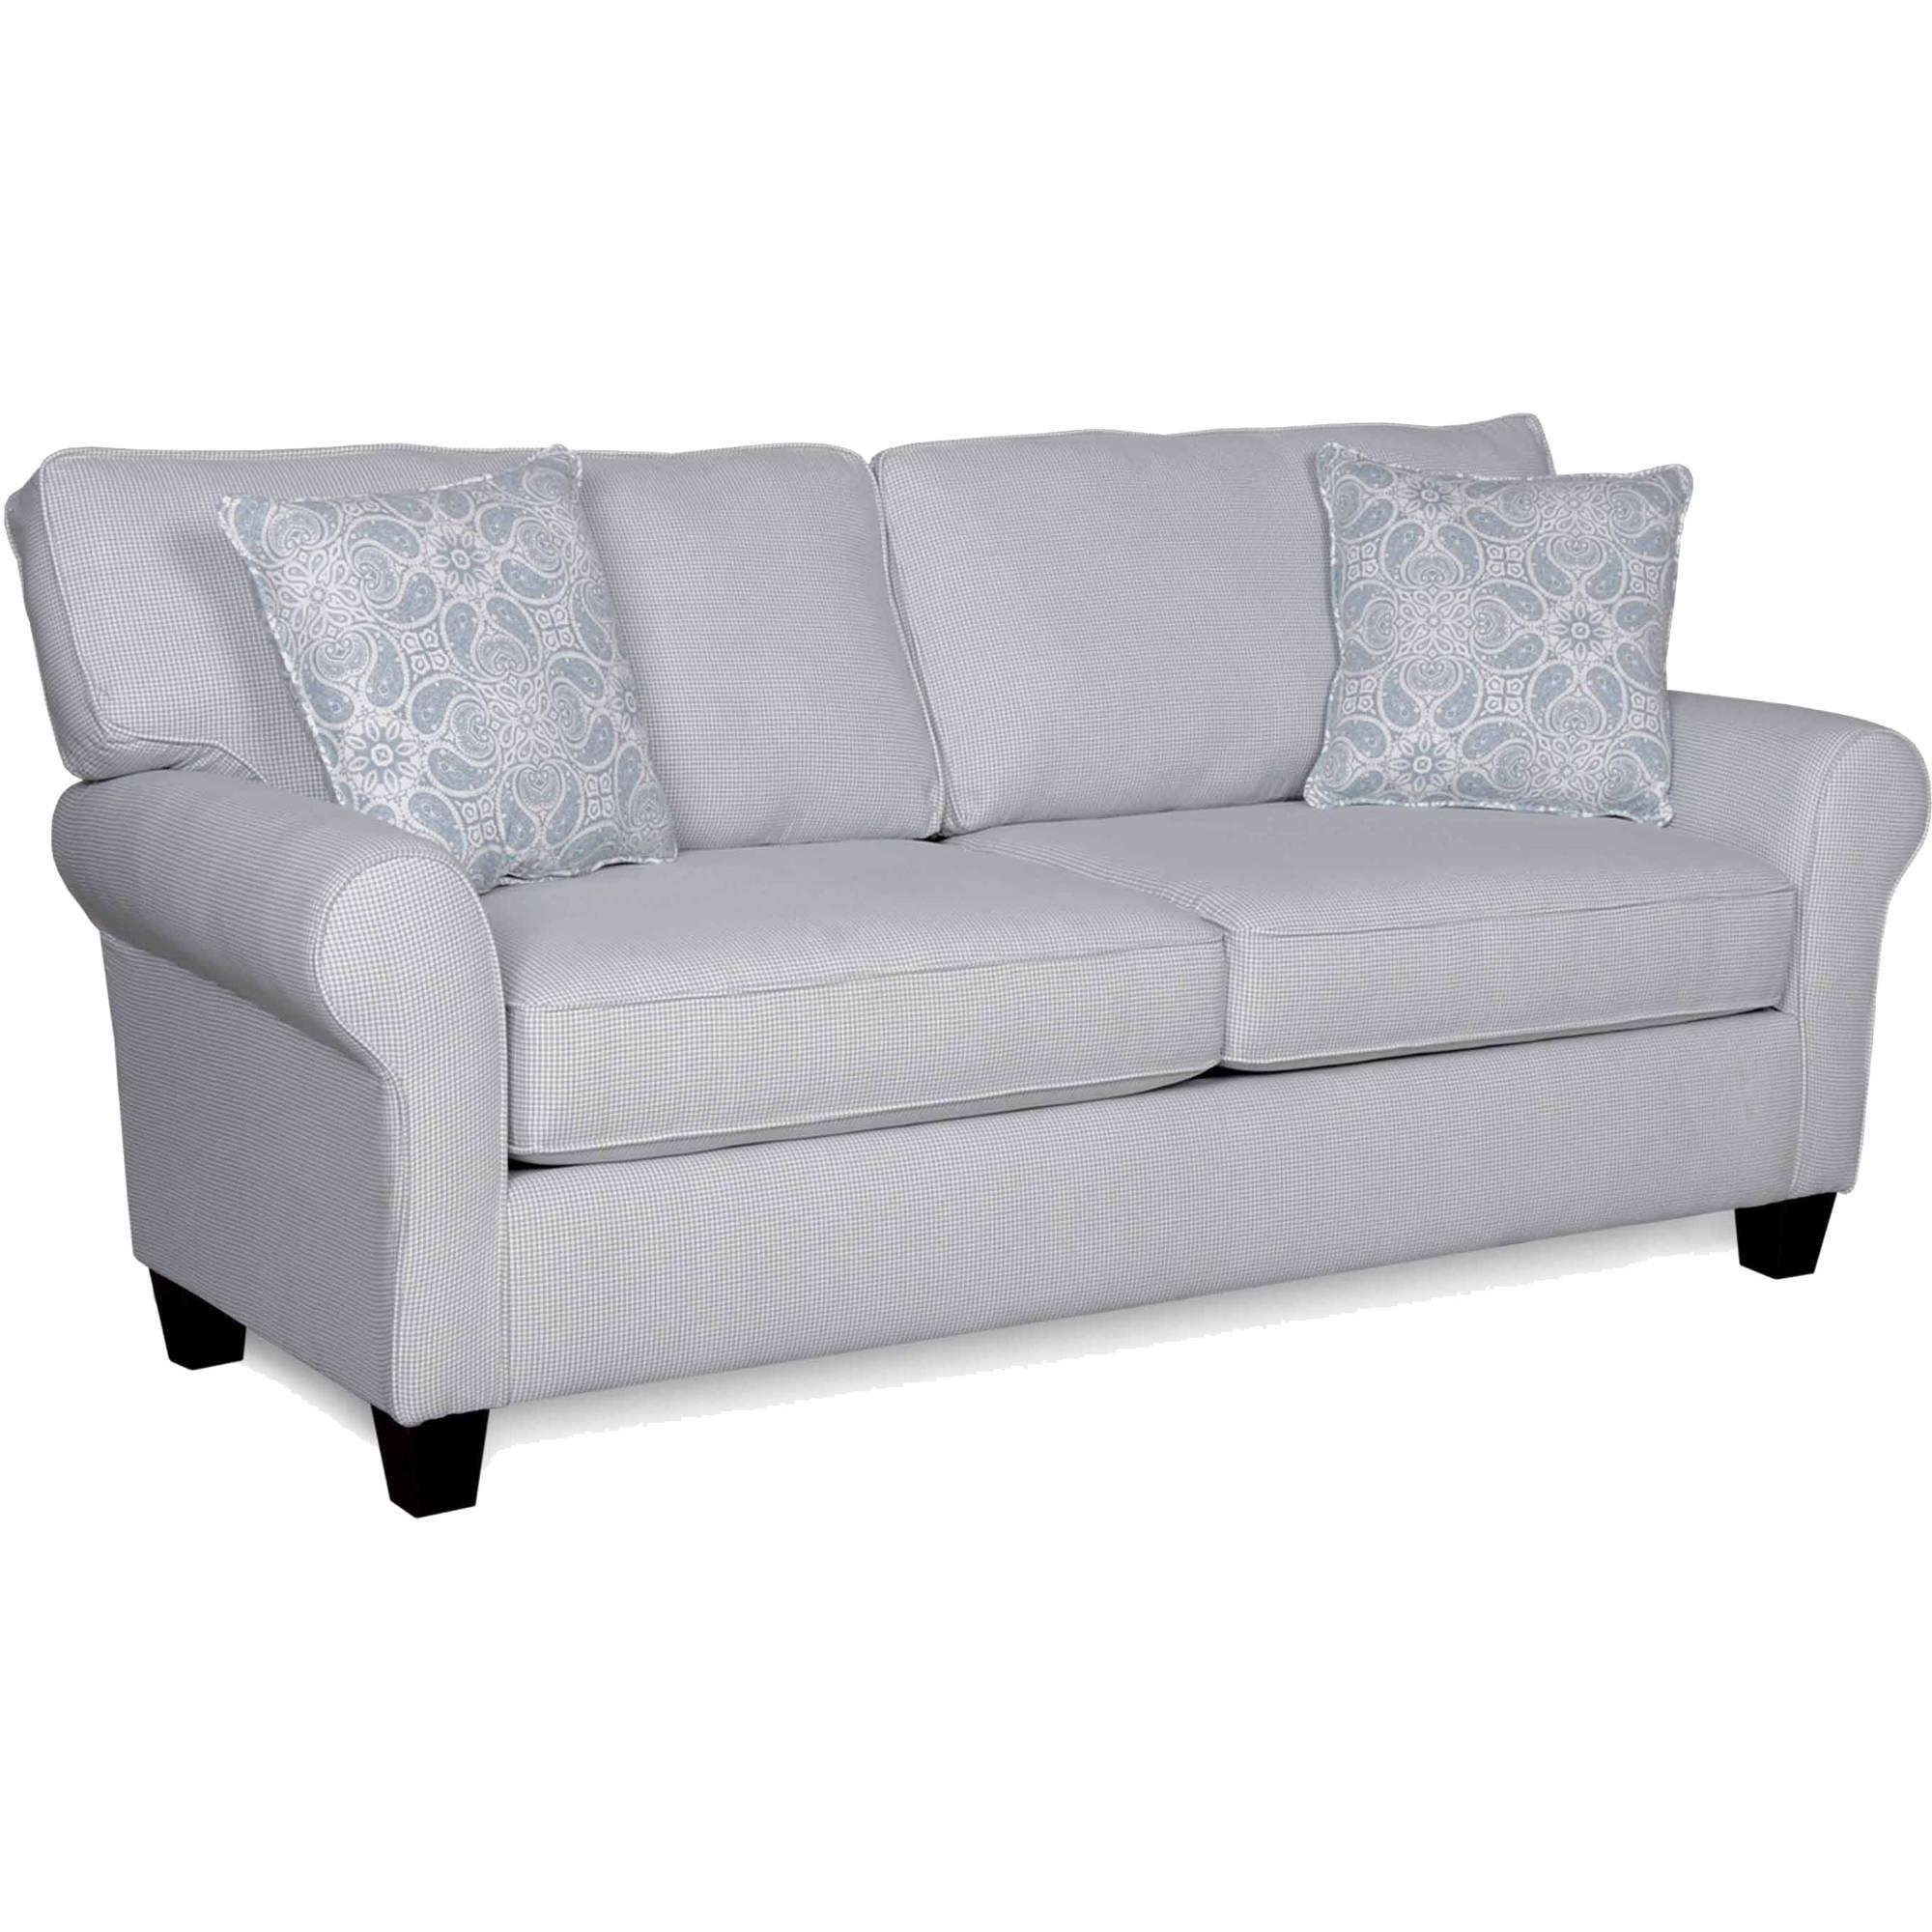 Sofab Bella Lake Slate Blue Gingham Sofa With 2 Accent Pillows Intended For Gingham Sofas (View 3 of 20)